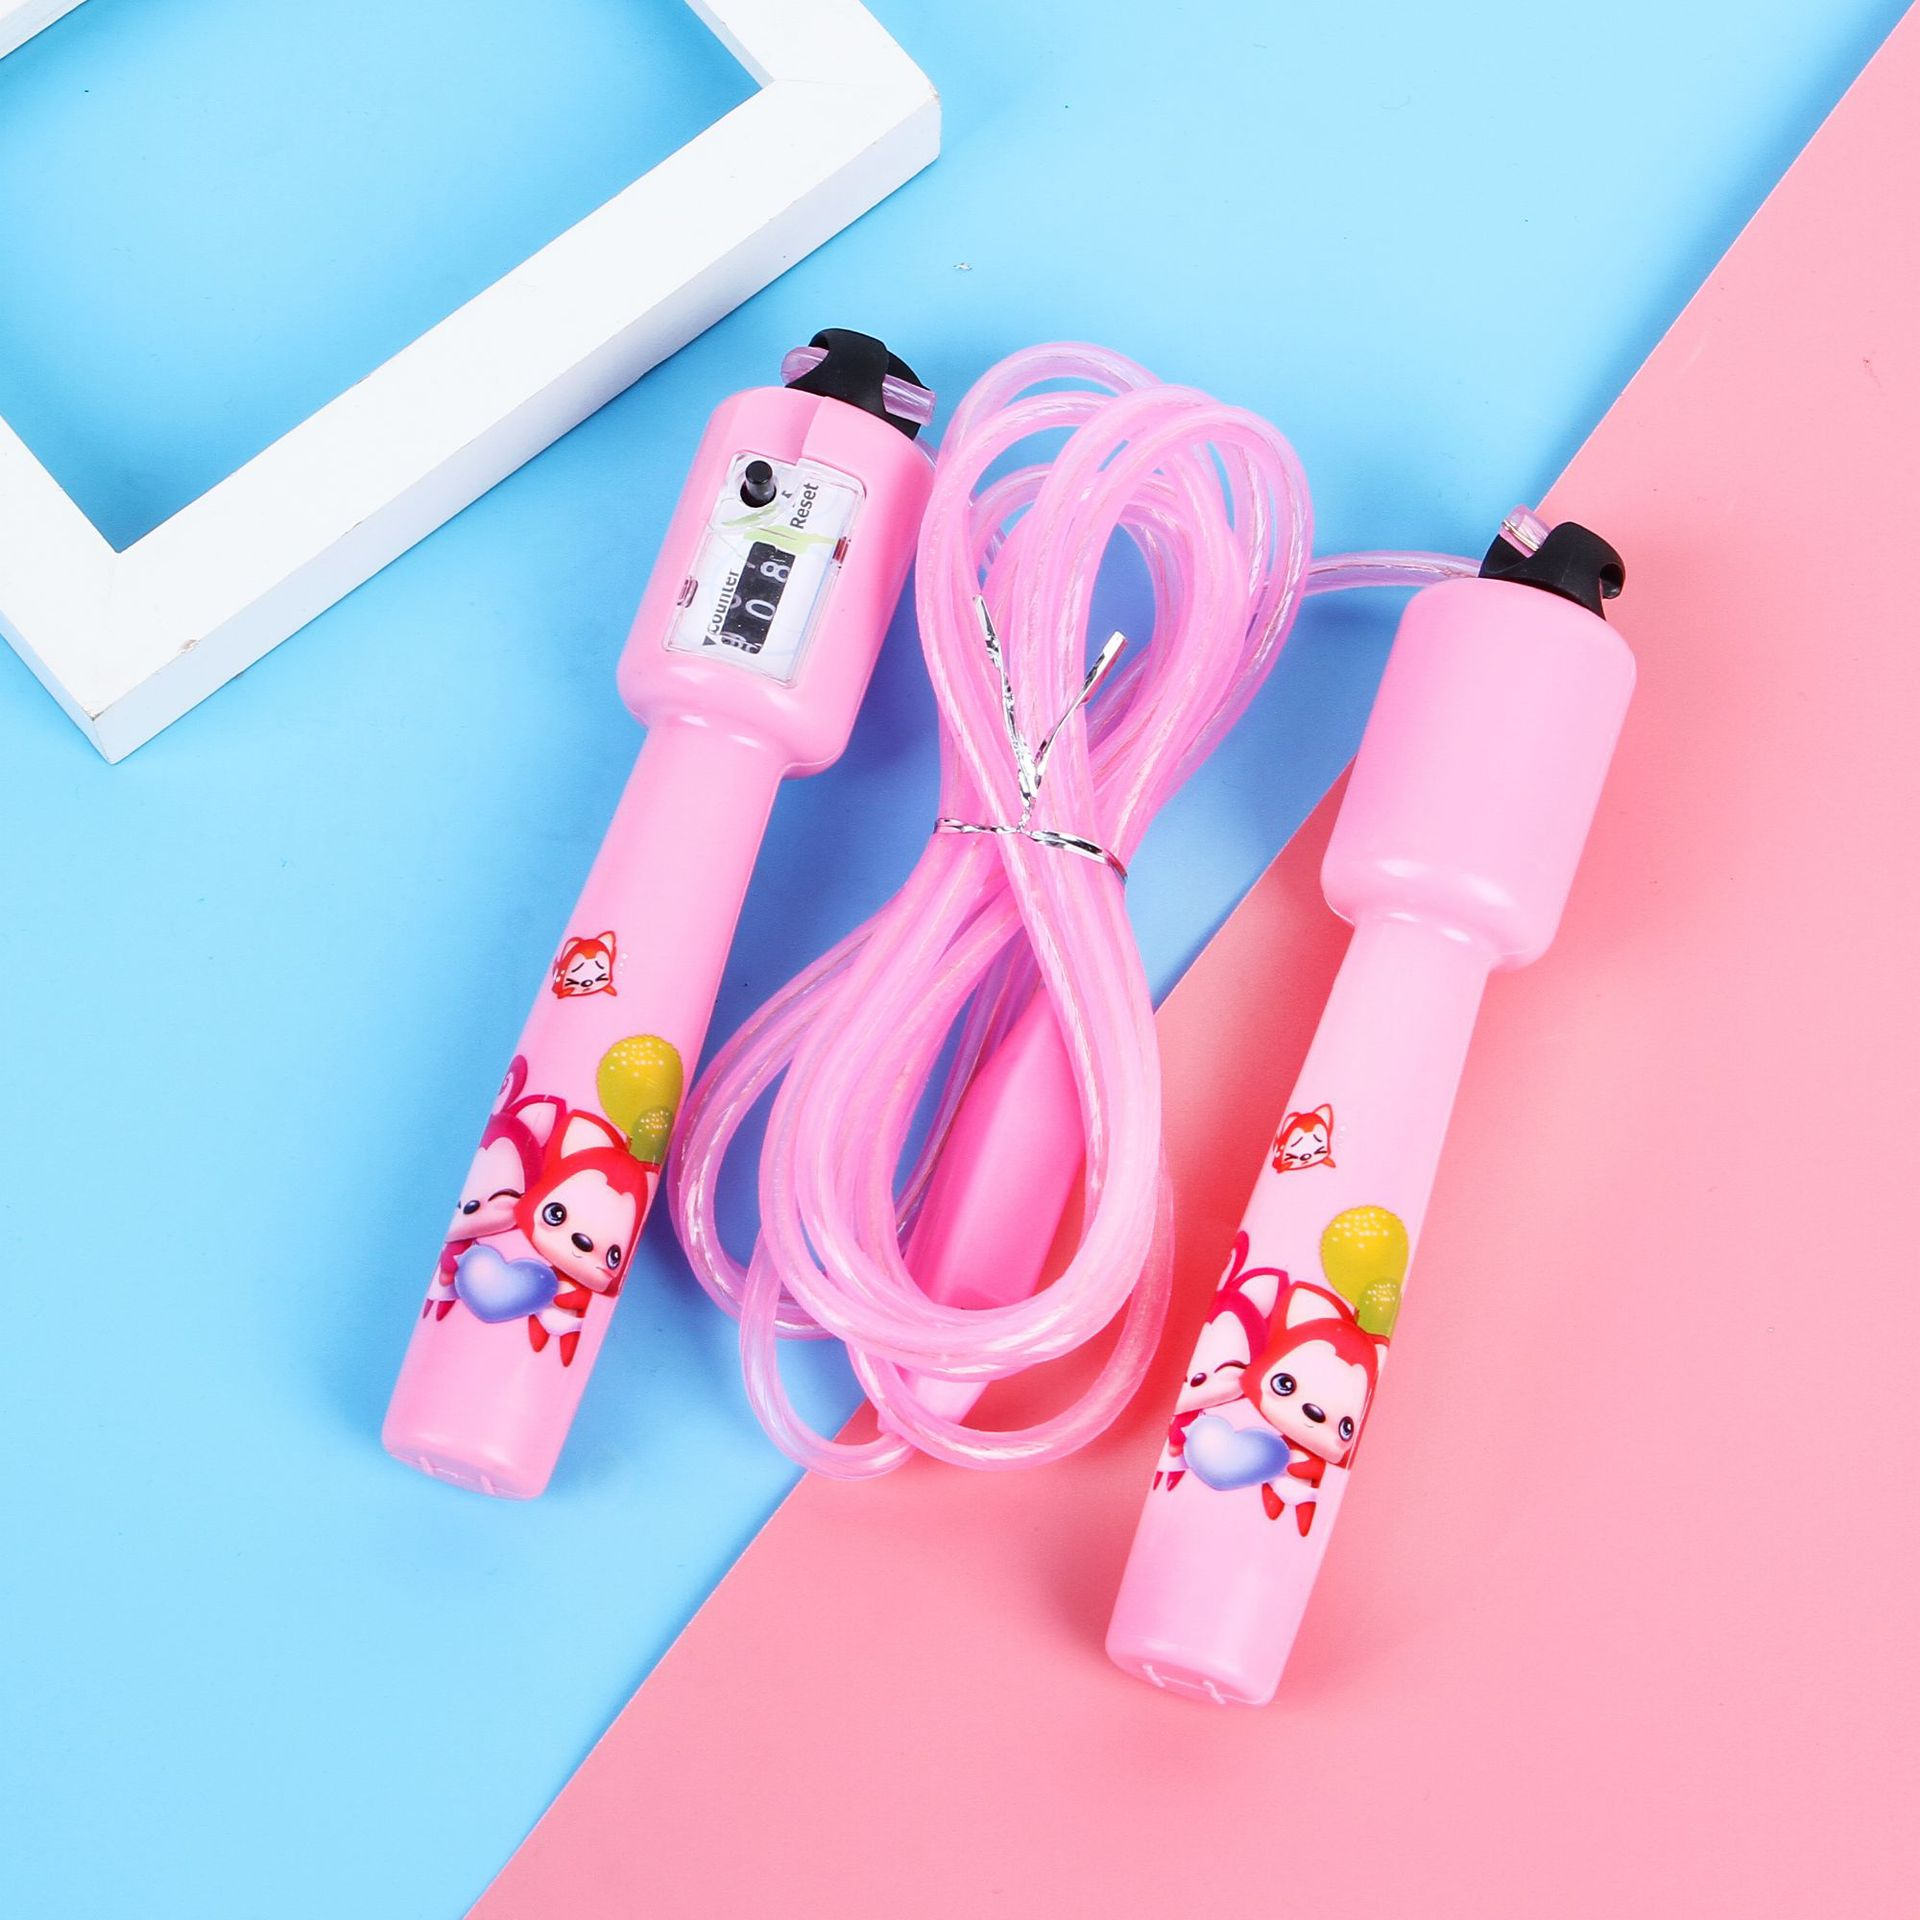 Wonyou Profession Shining Colorful Cartoon Handle Count Children Jump Rope Kids' Fitness Equipment Toy Manufacturers Direct Sell